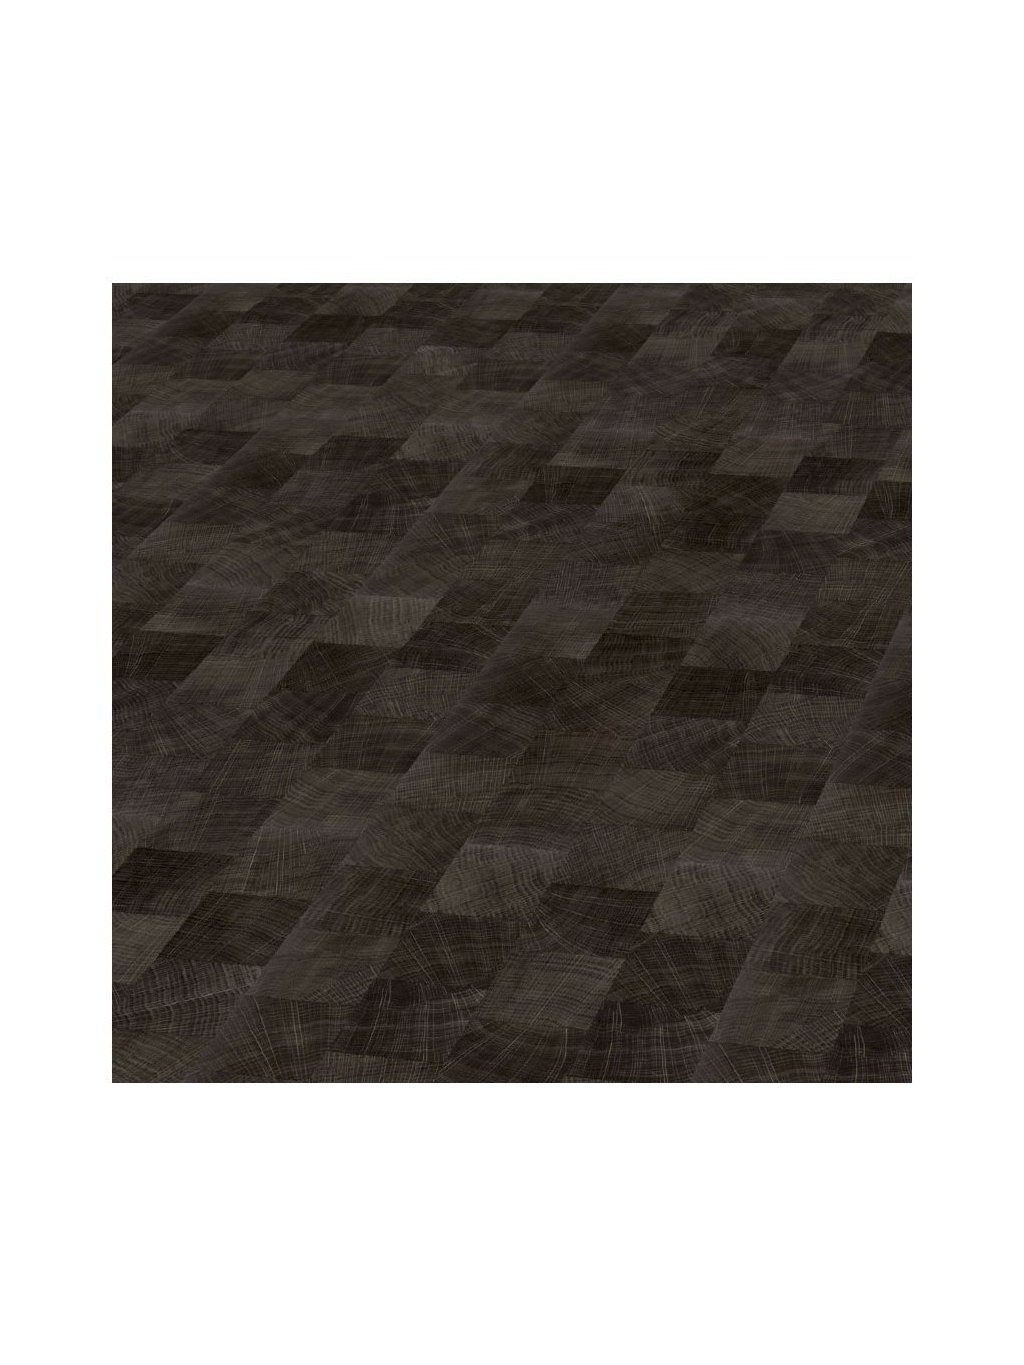 C13 5843 Dark Endgrain Wodblock